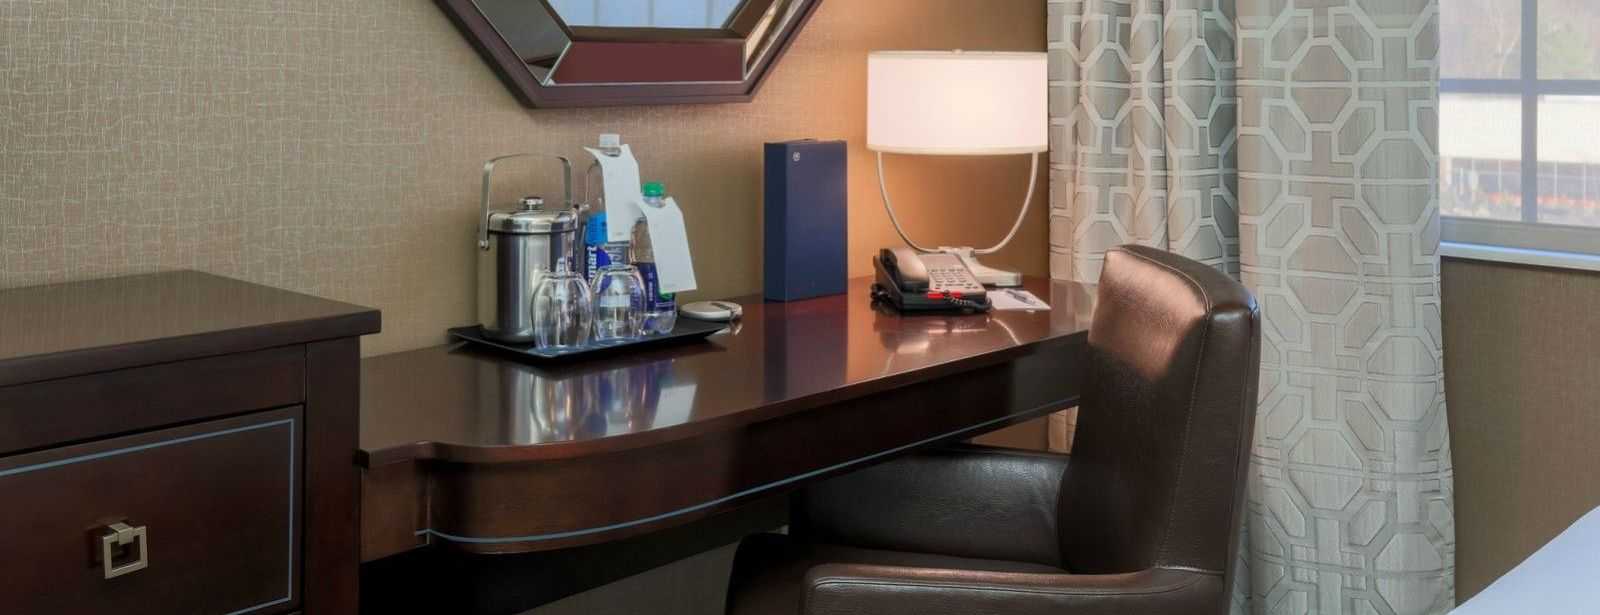 Tarrytown Accommodations - Guest Room Desk